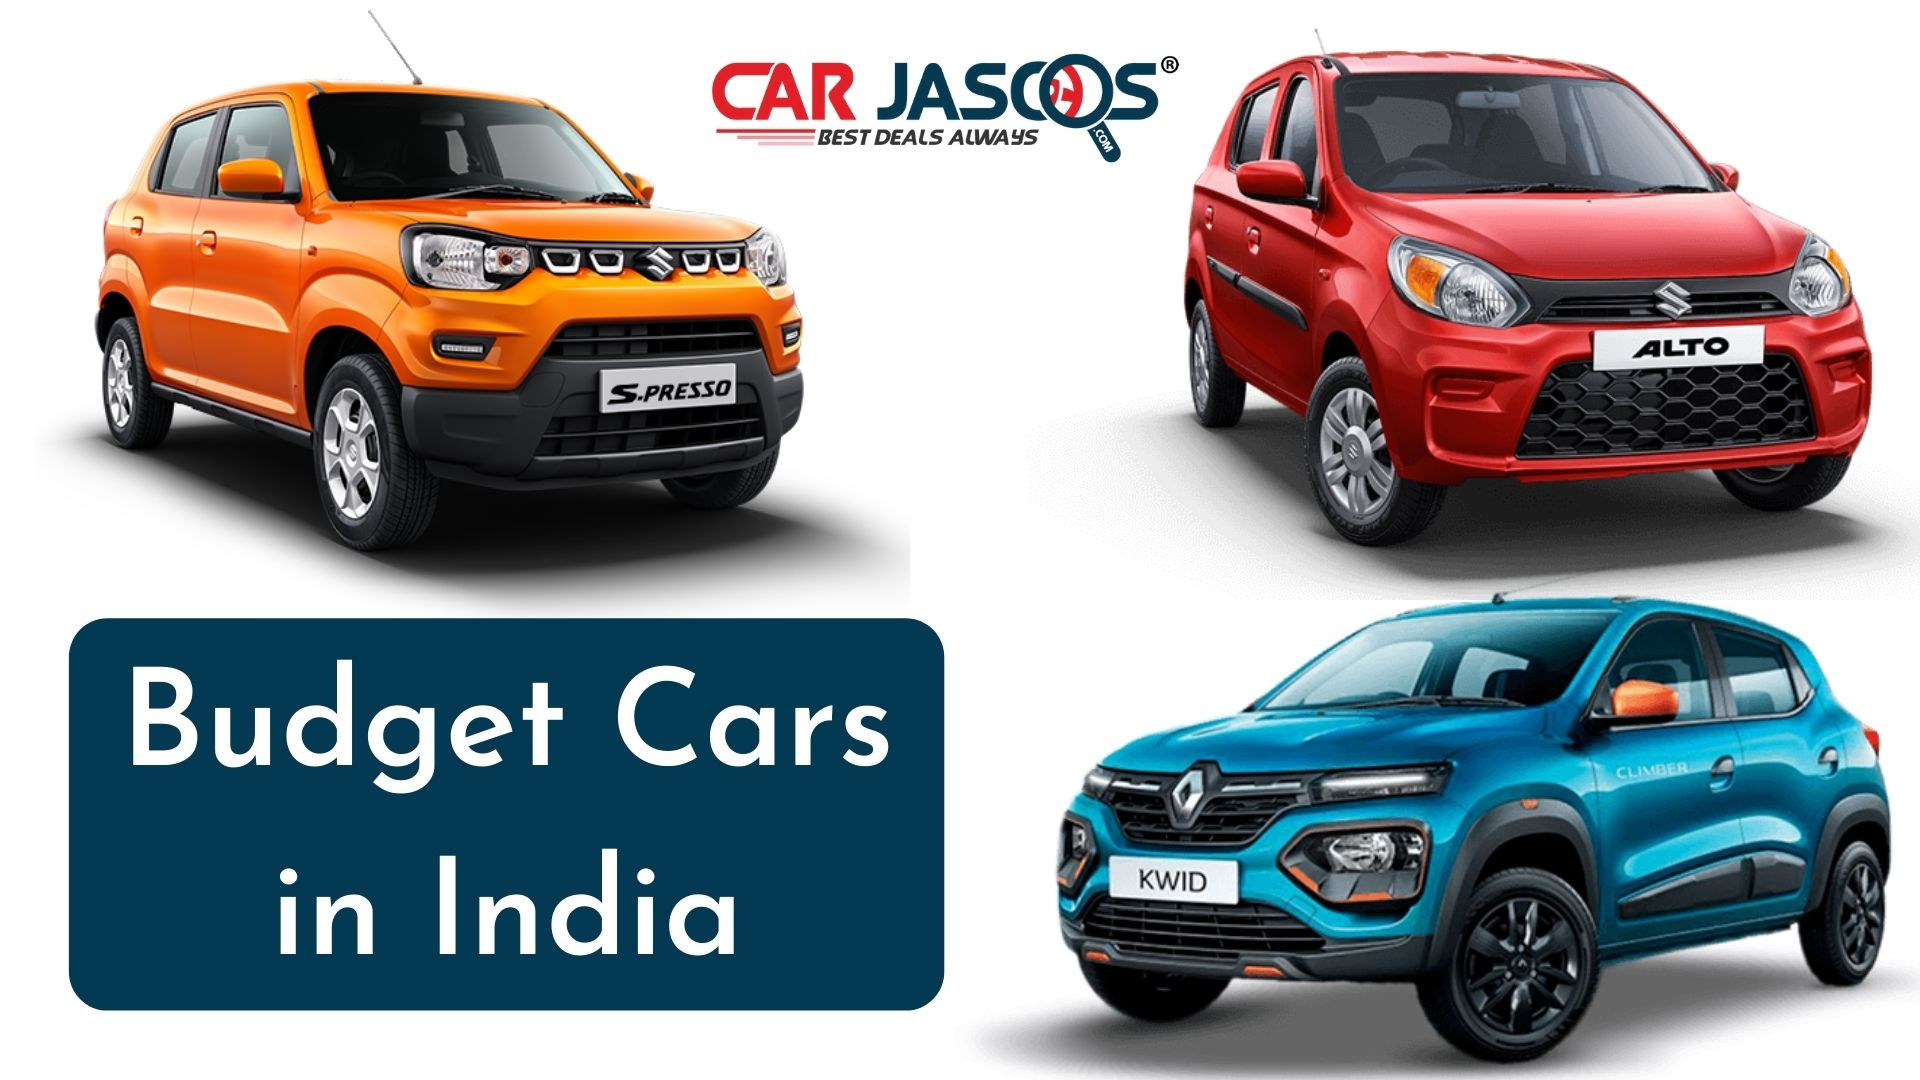 Budget Cars in India